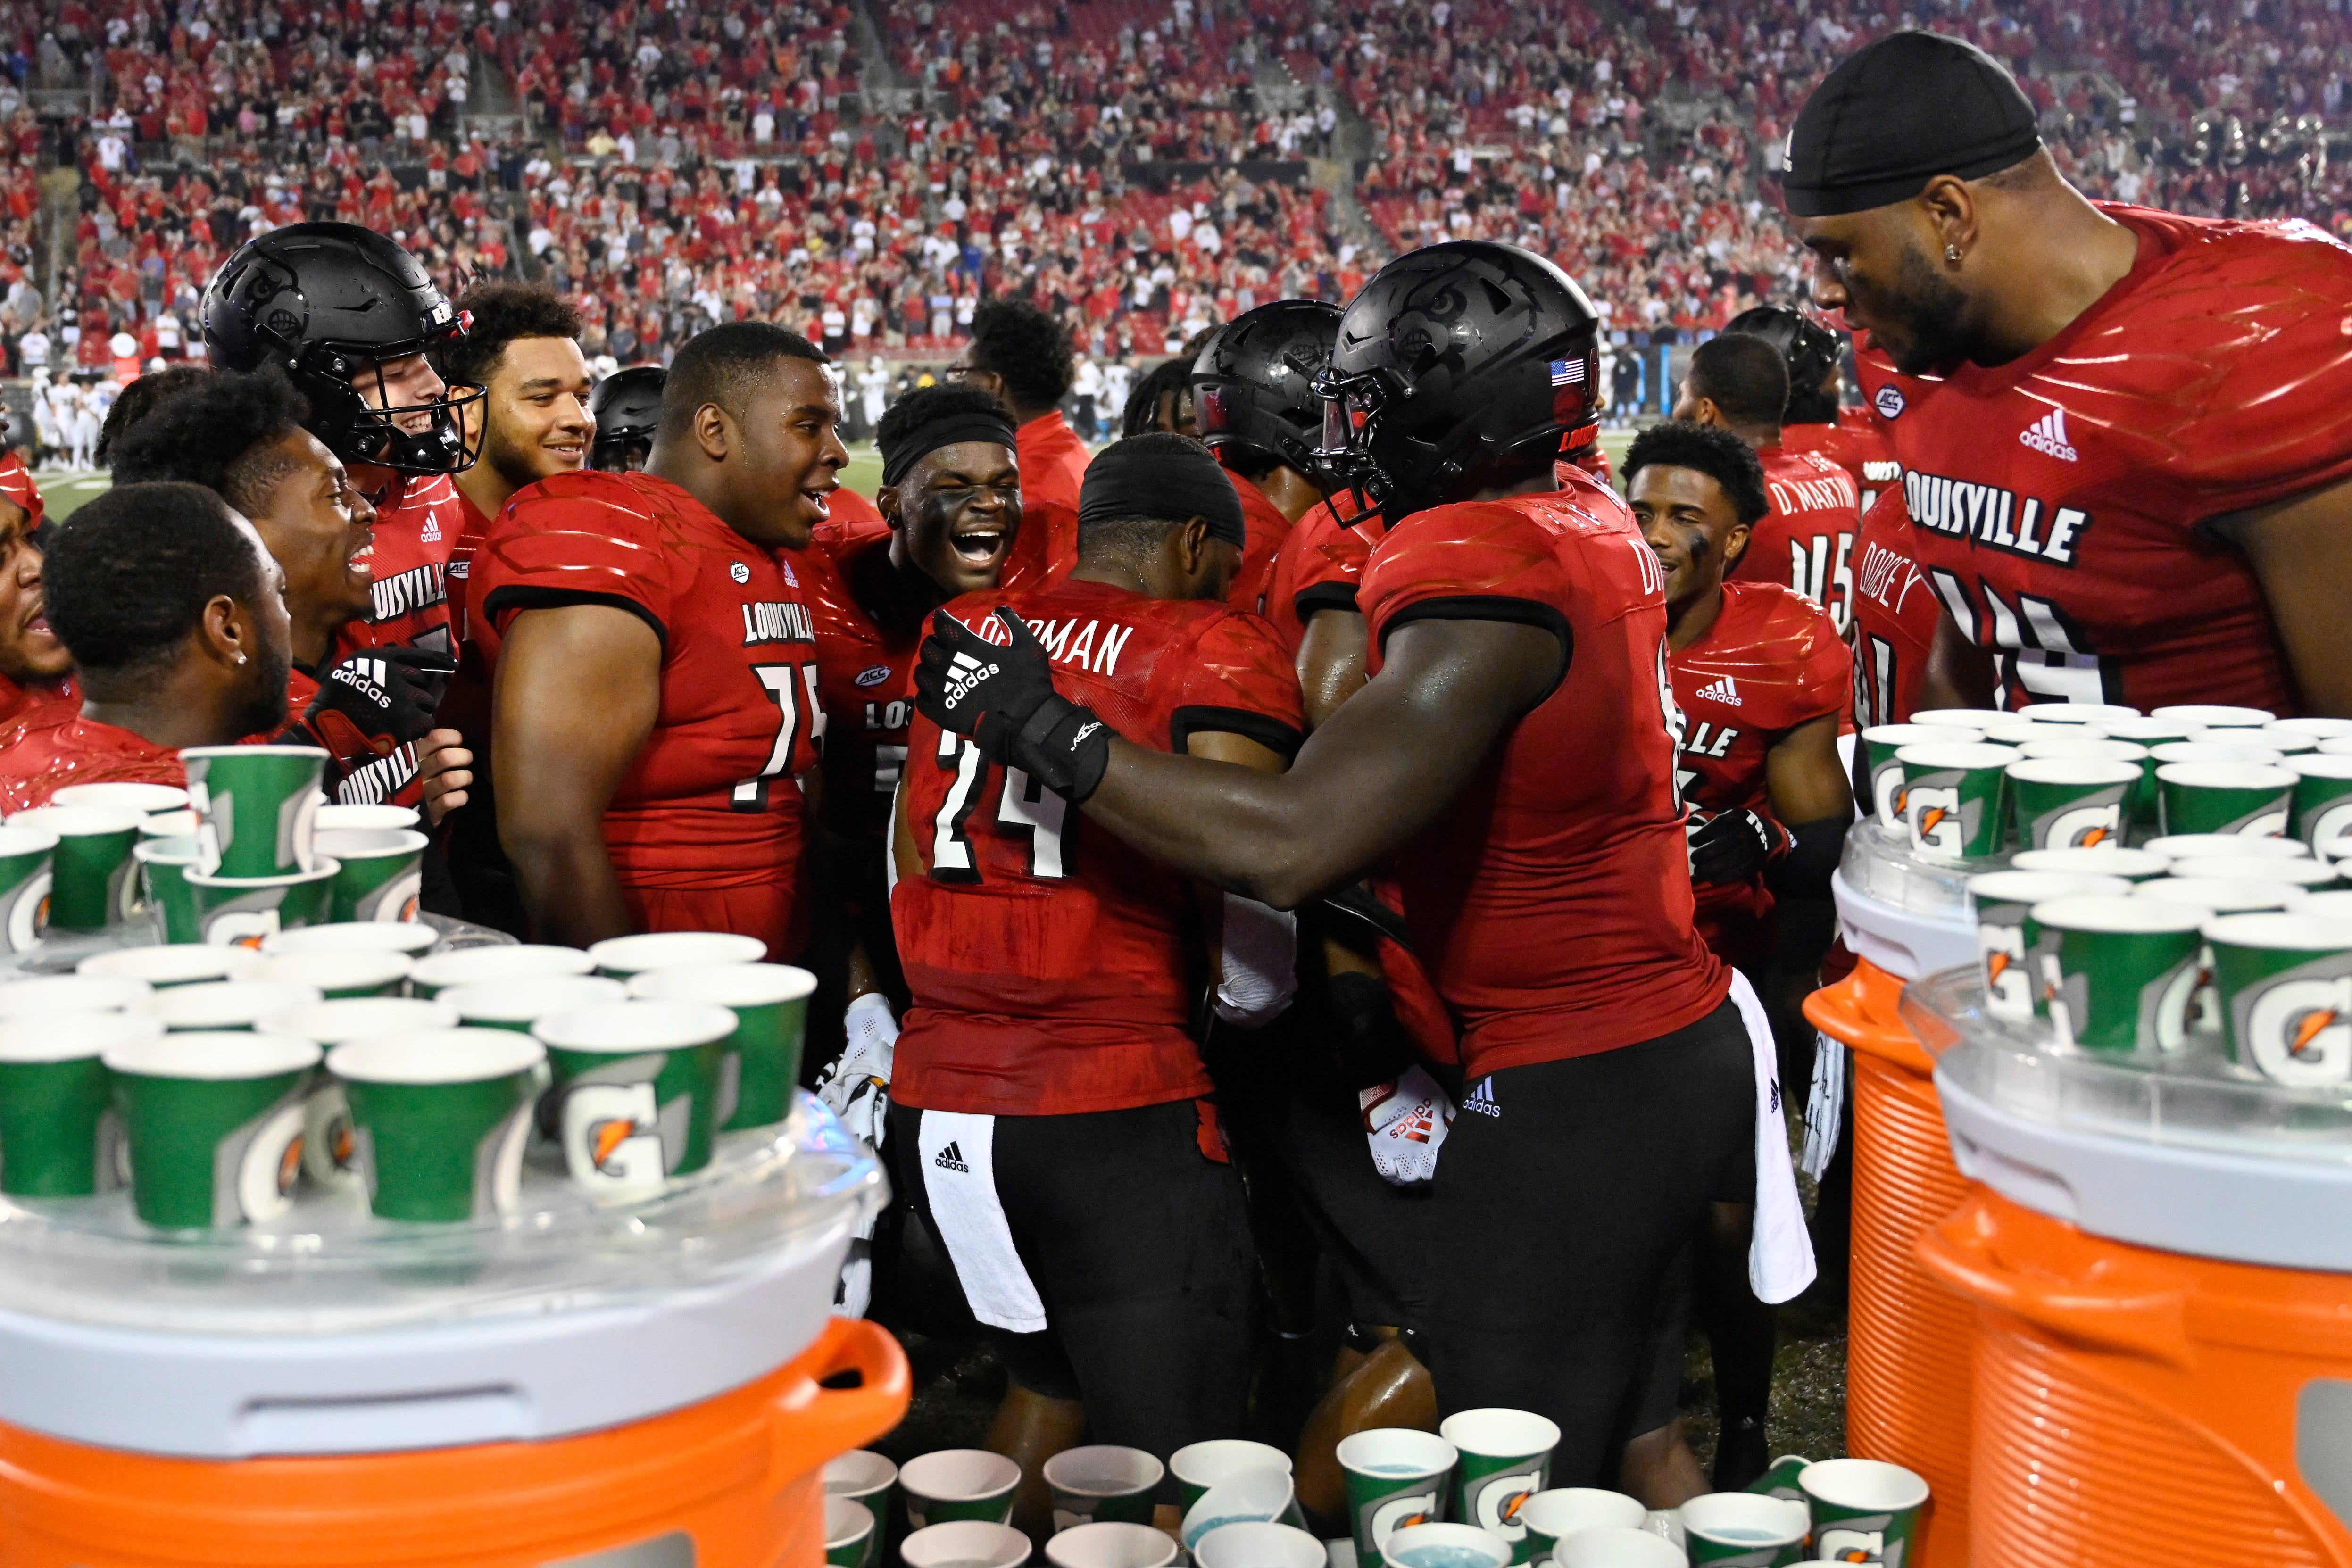 Pick-six by Jaylin Alderman in final seconds gives Louisville wild win over Central Florida